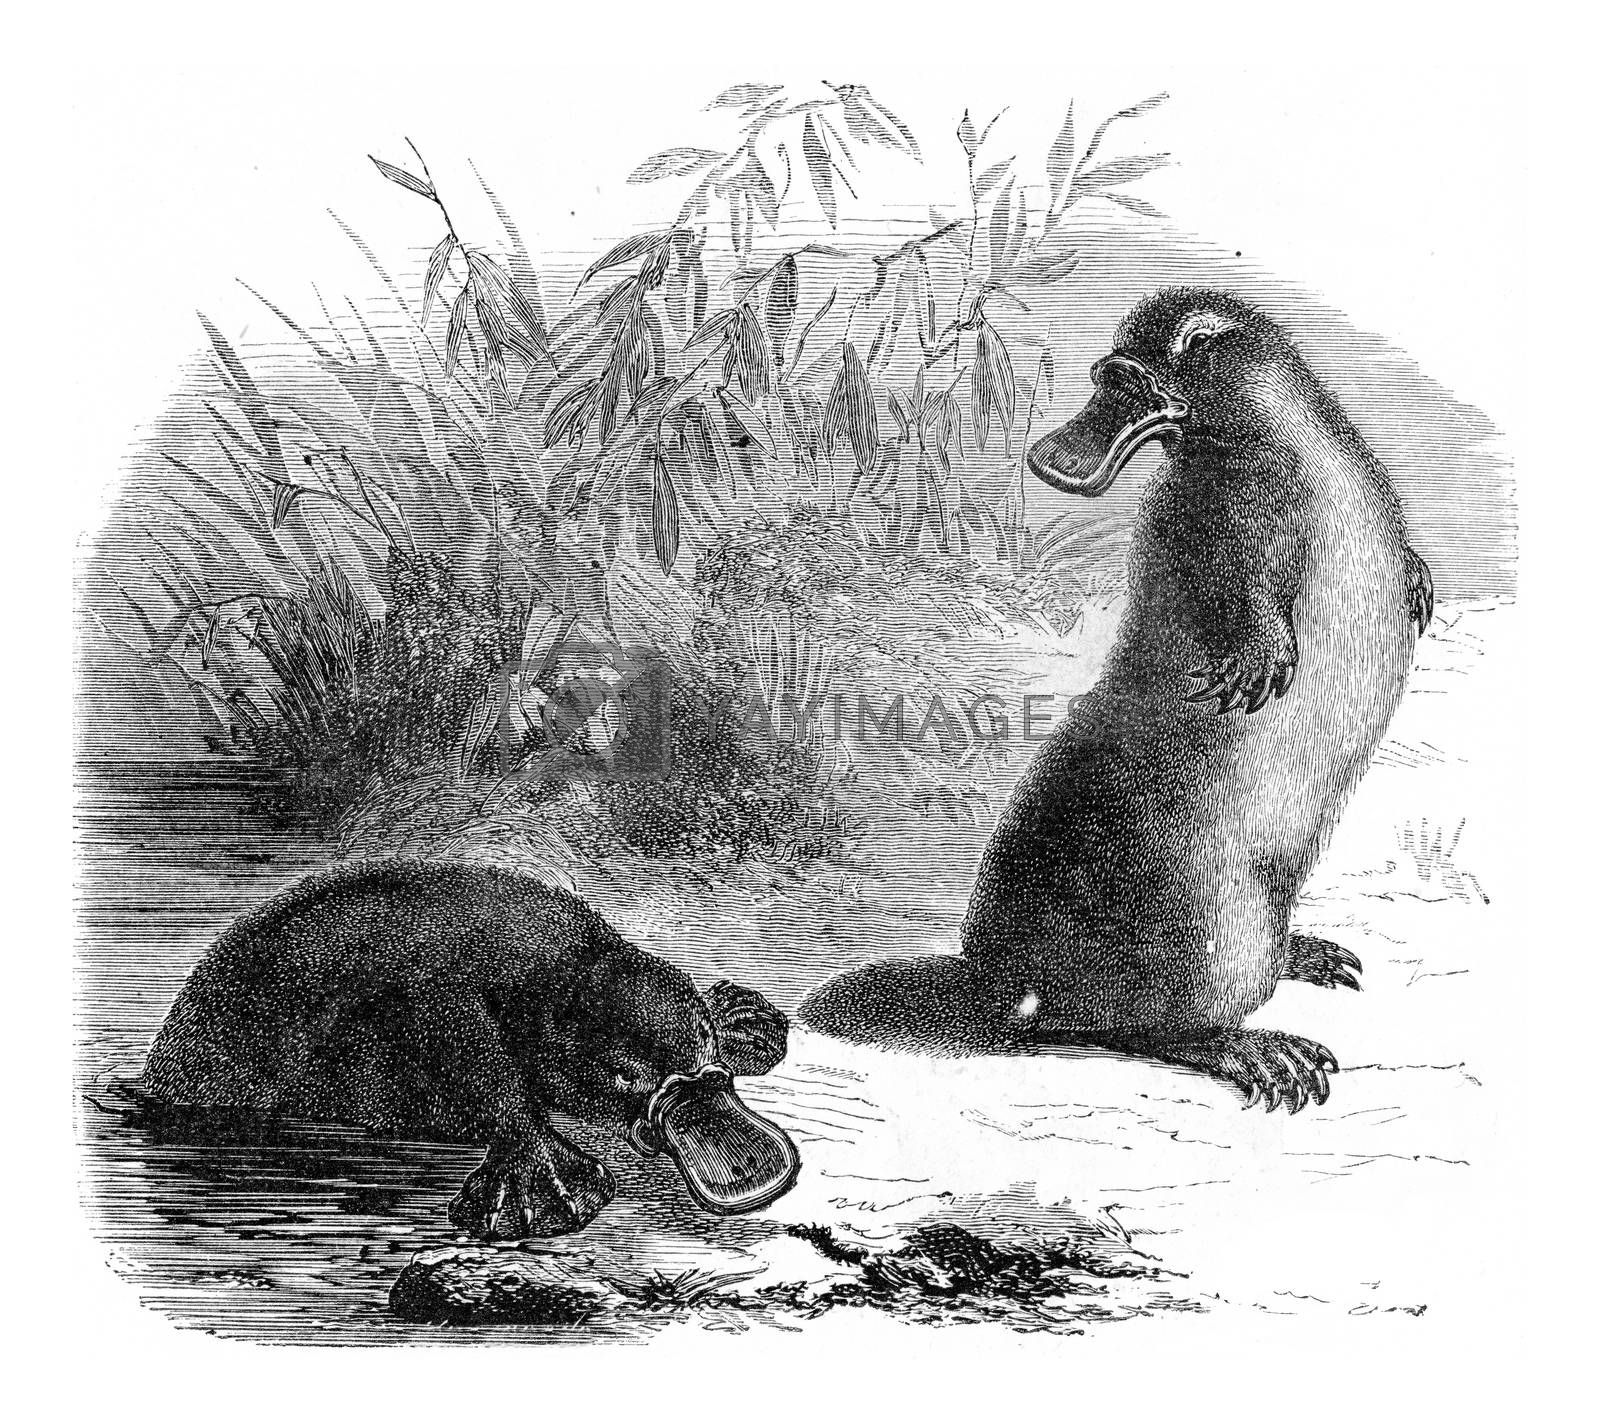 Platypus, vintage engraved illustration. From Zoology Elements from Paul Gervais.